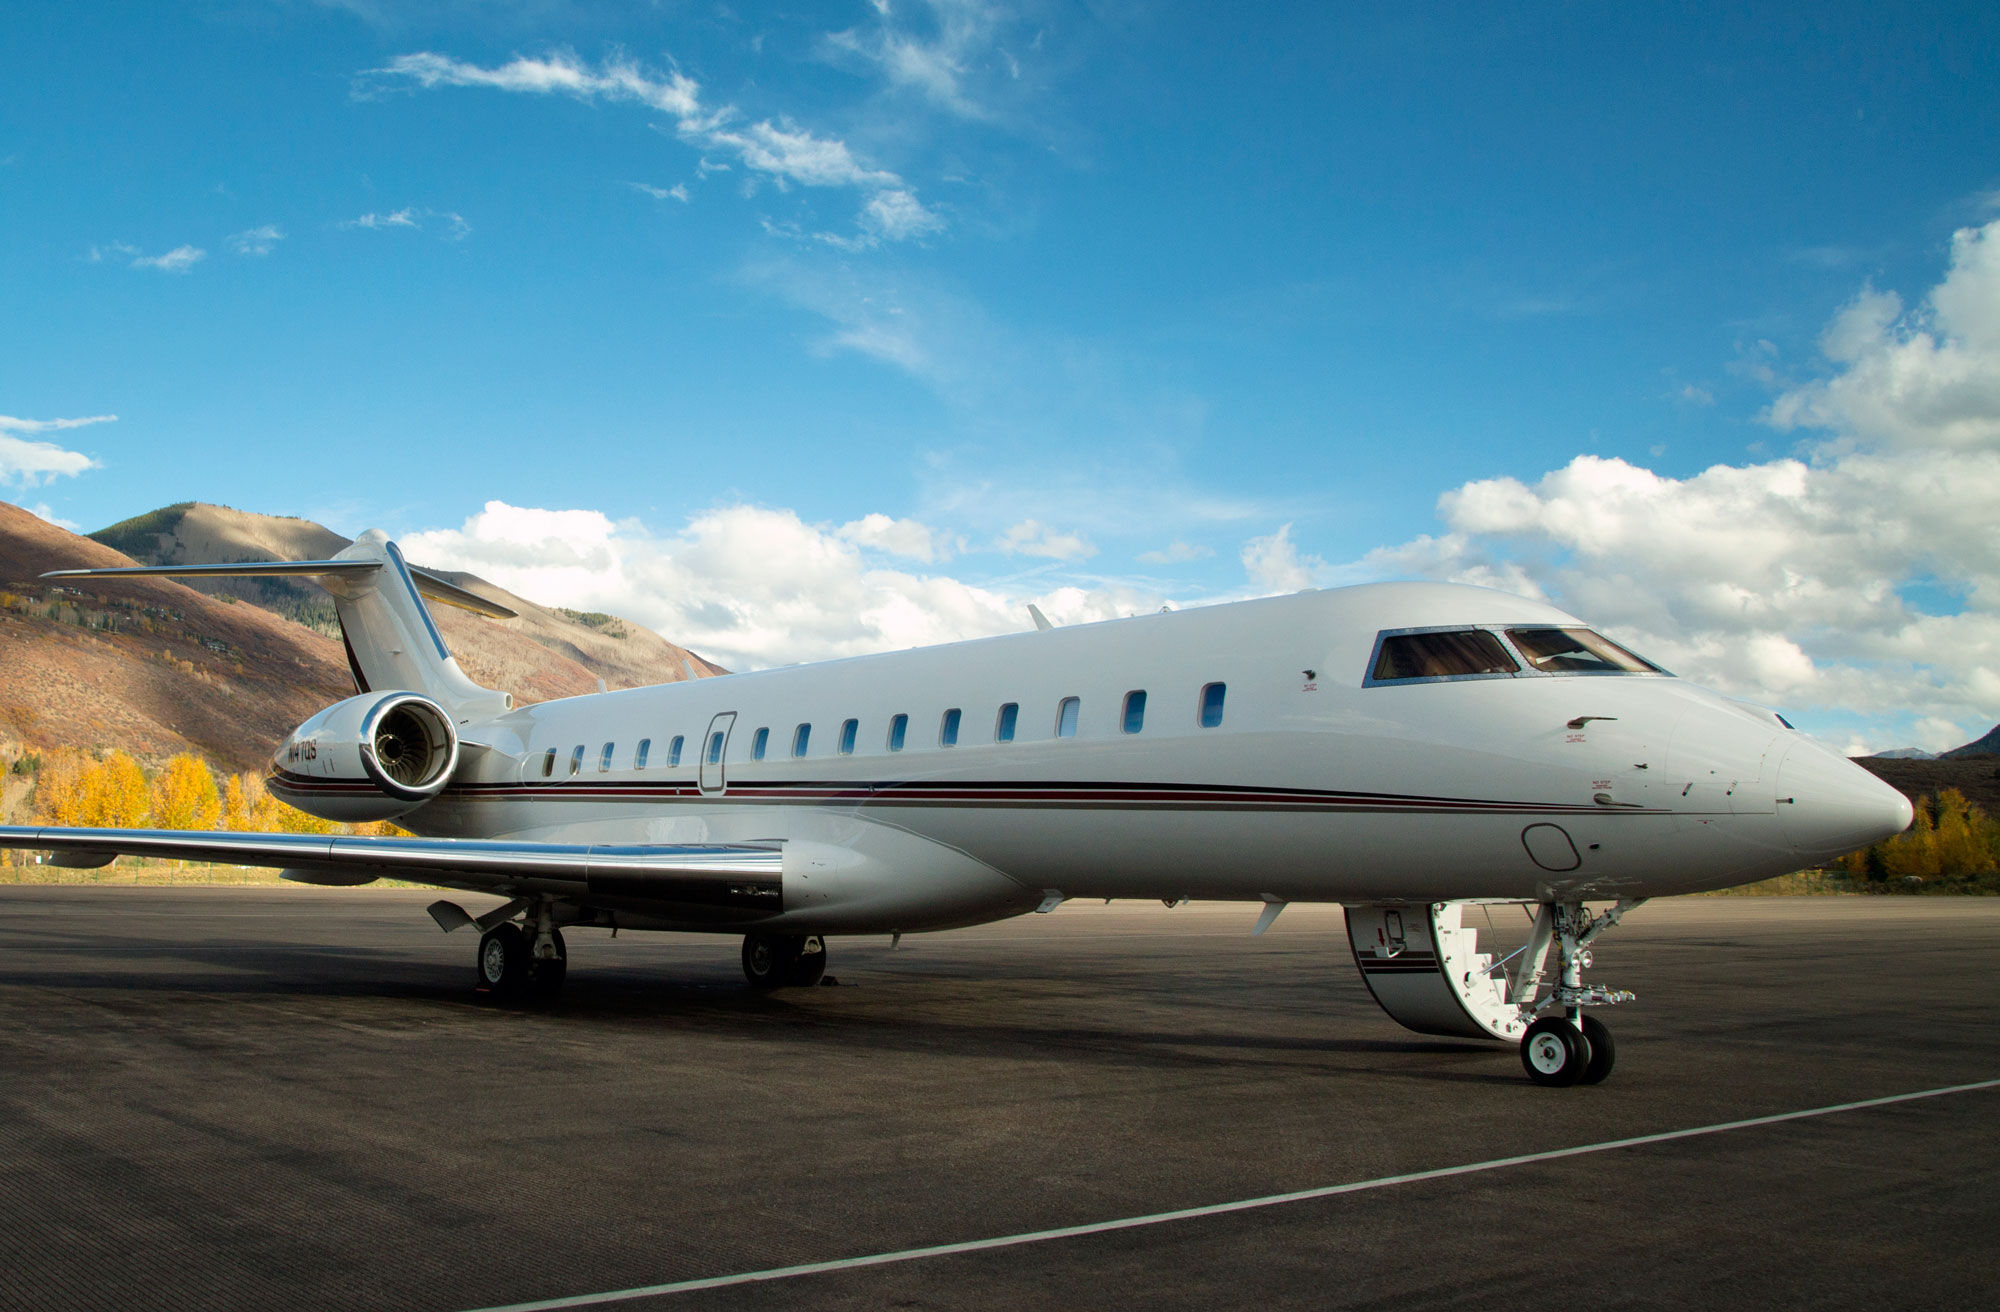 Argus north american bizav traffic hiccups in april for Large cabin business jets